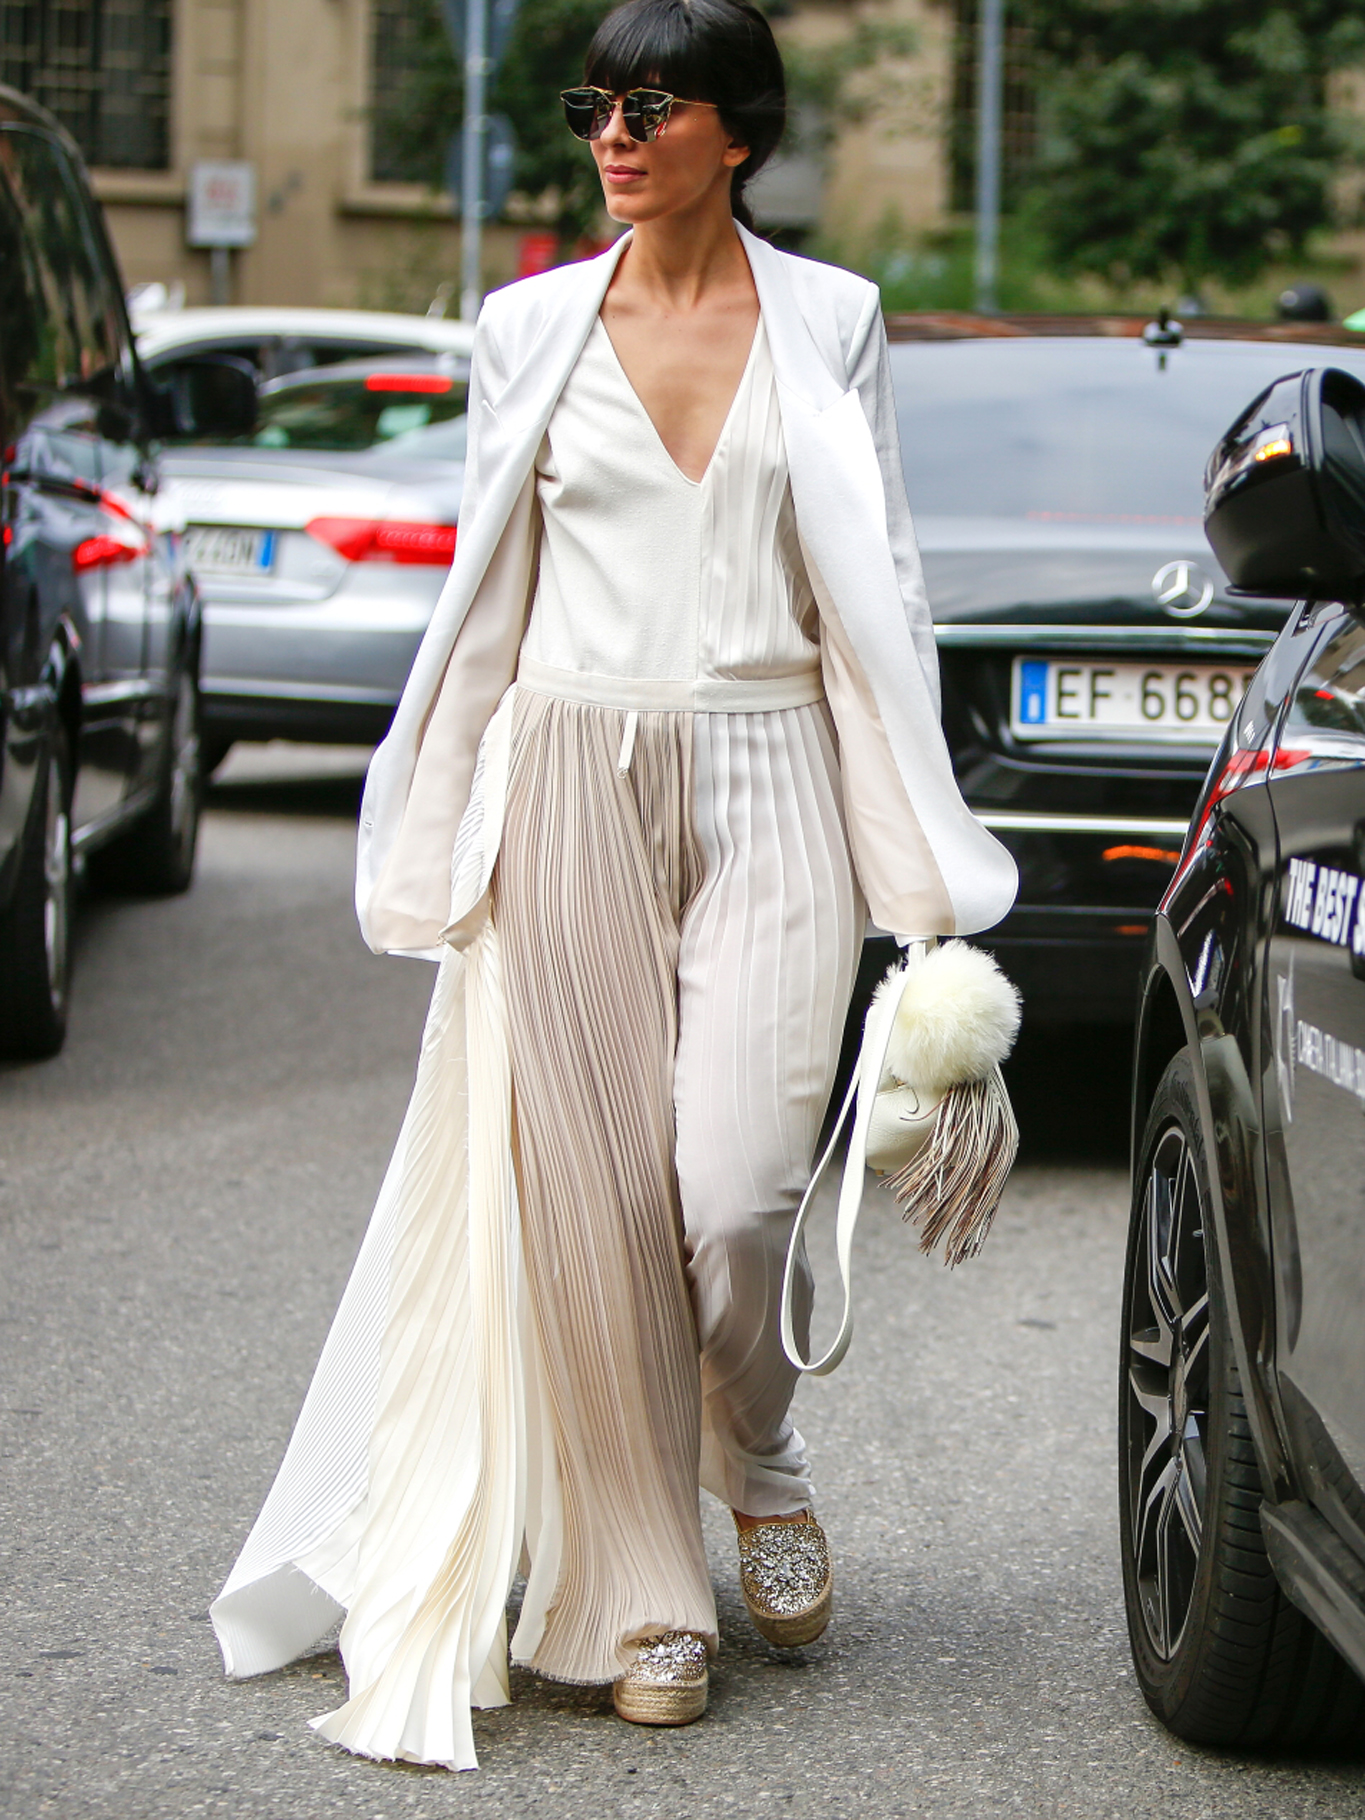 Come indossare il bianco in total look